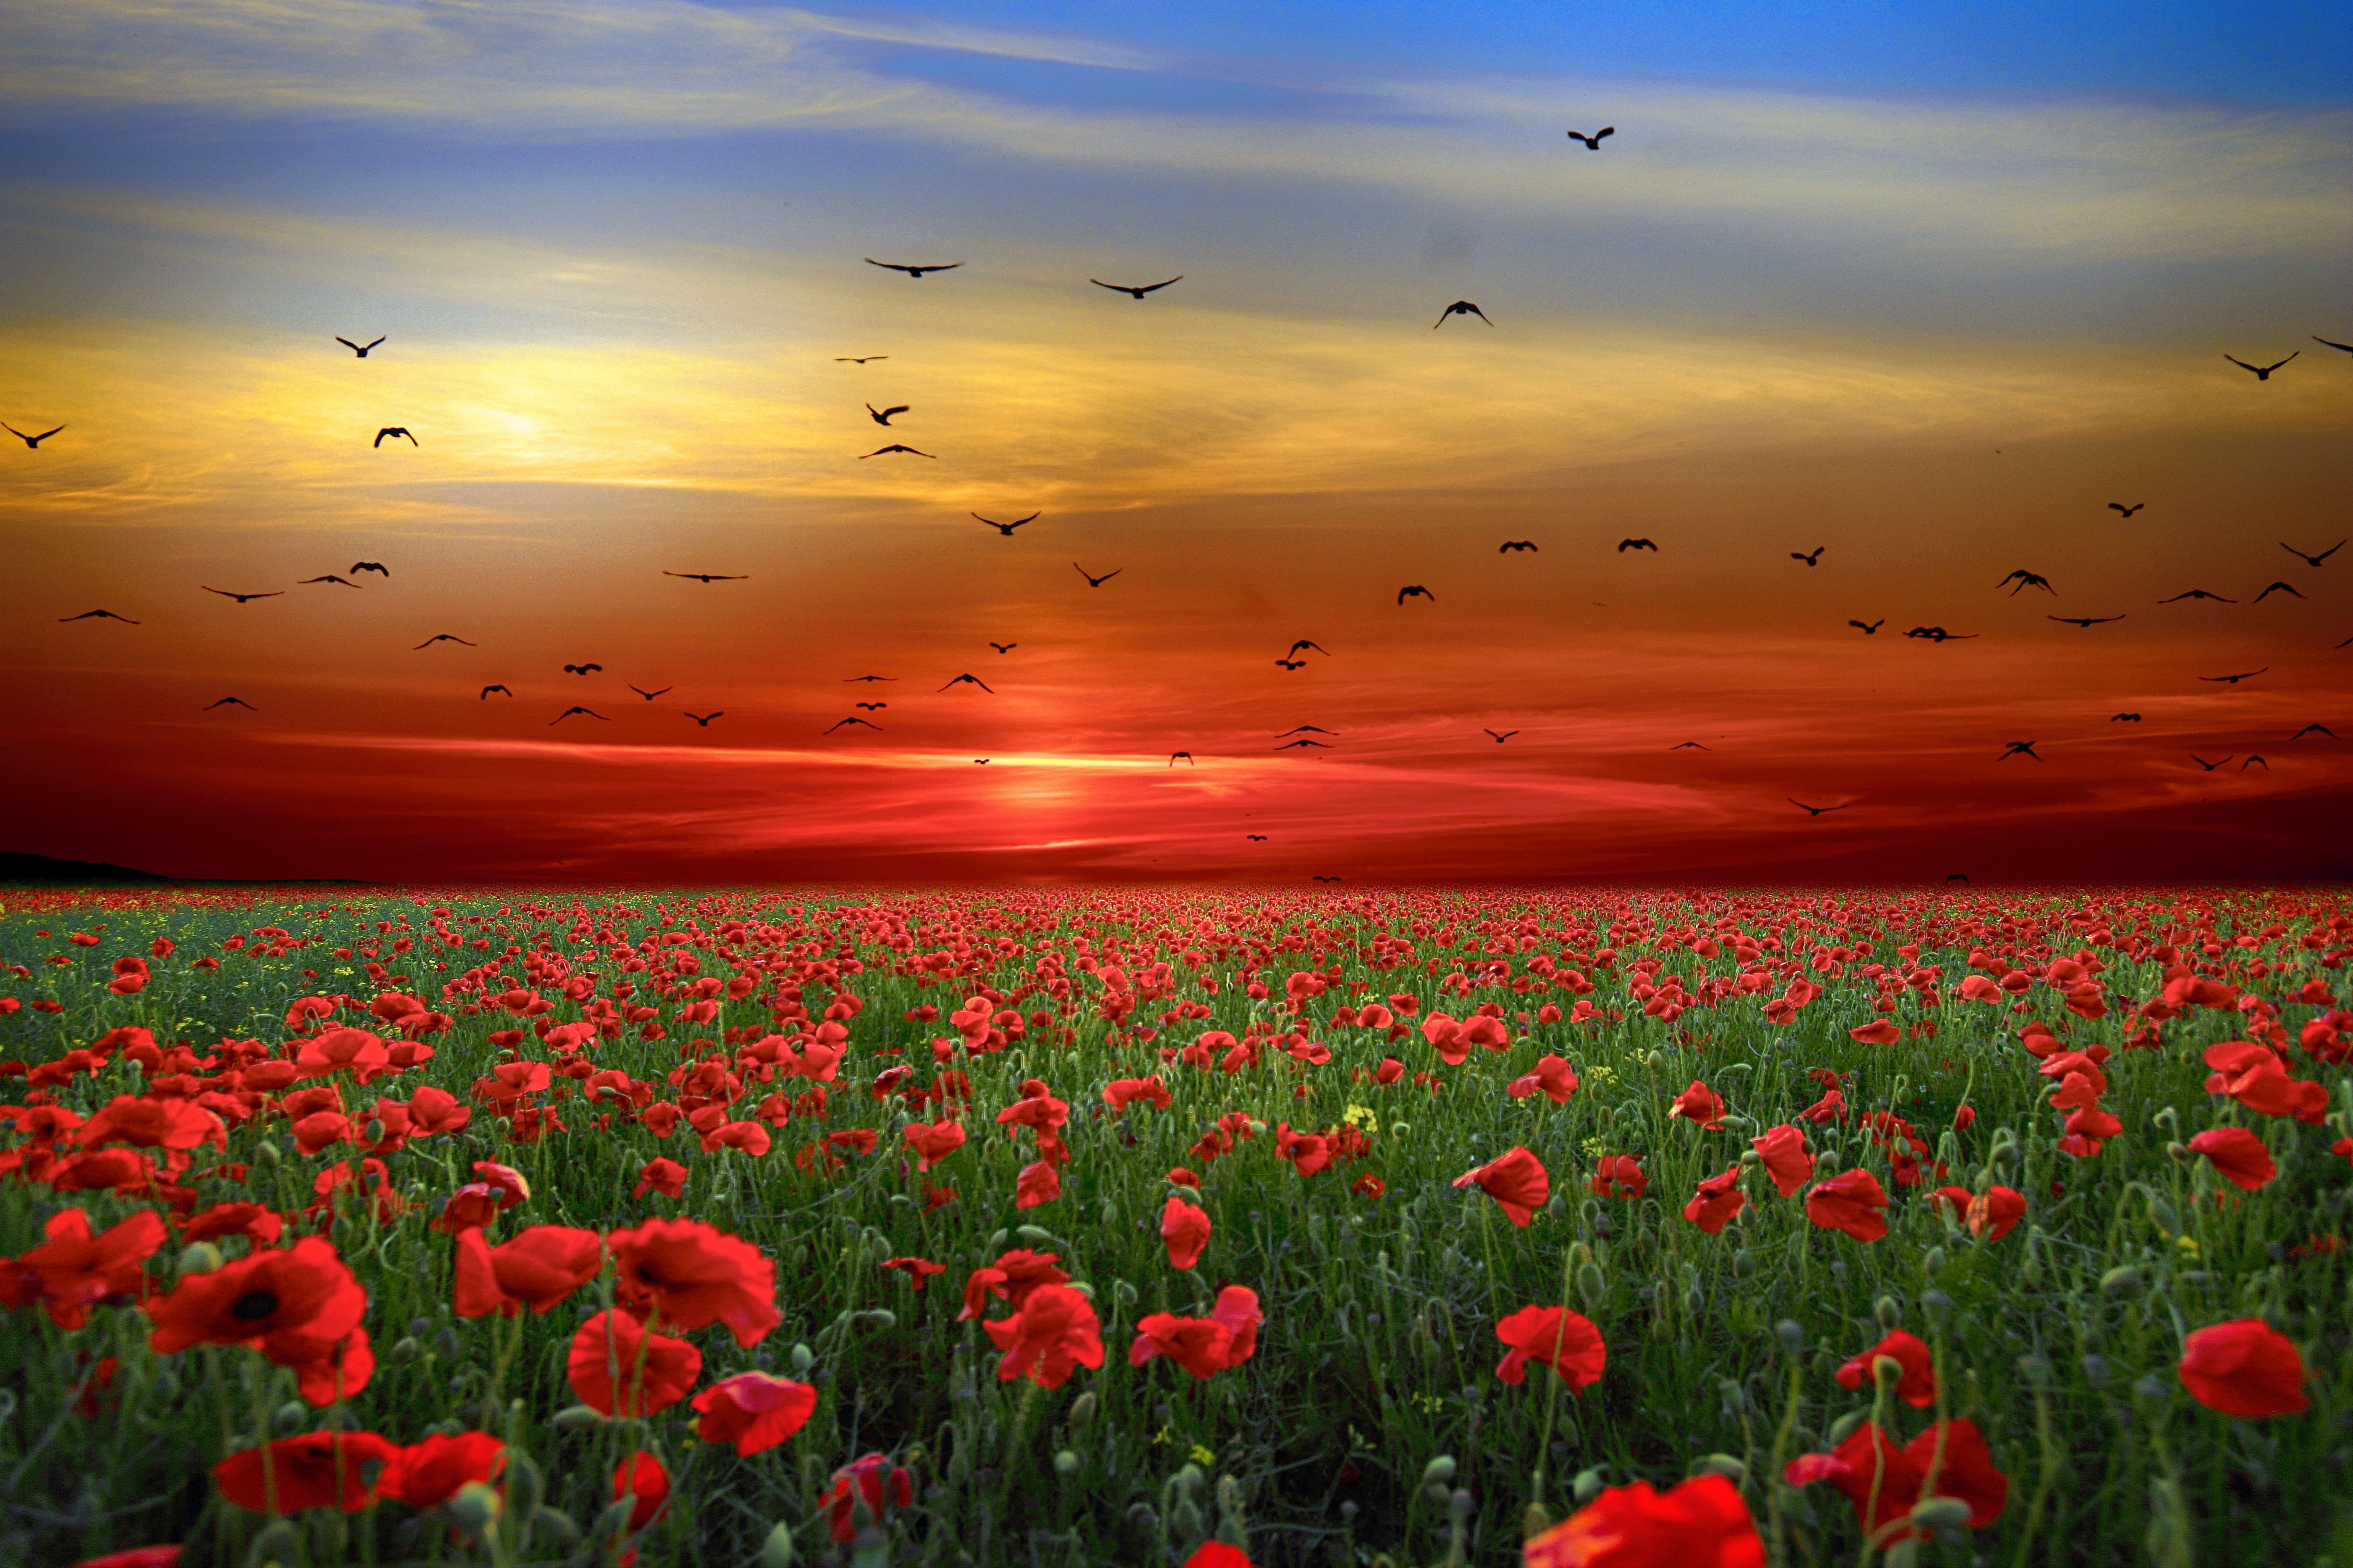 flower, sunset, birds, sky, redflower